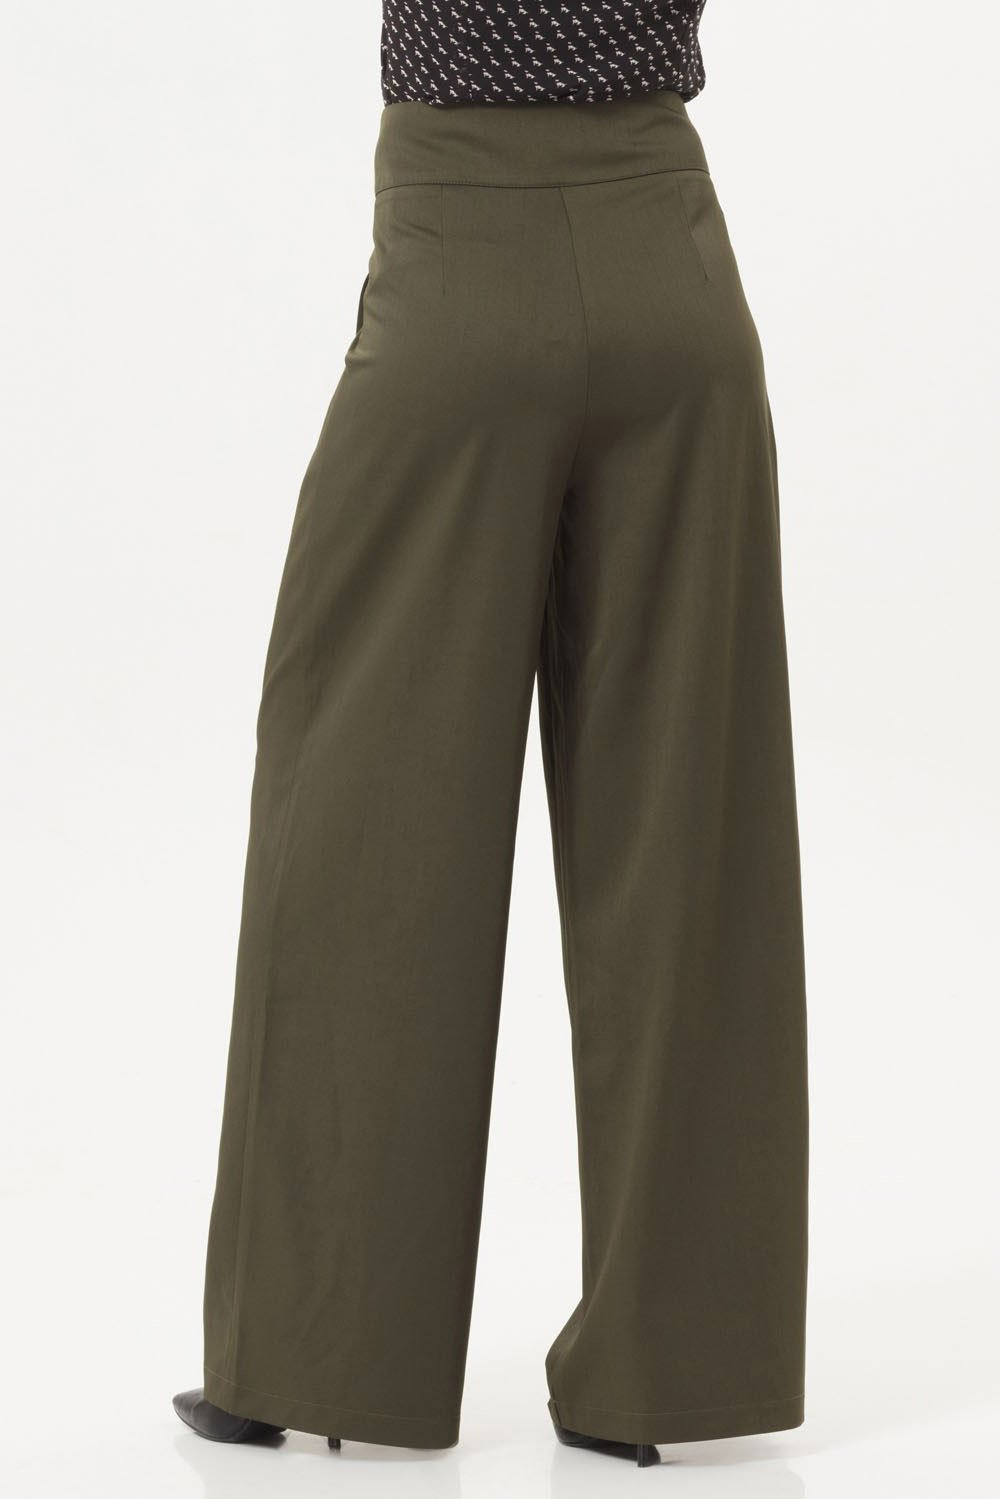 40s Ola Palazzo Trousers In Olive Green